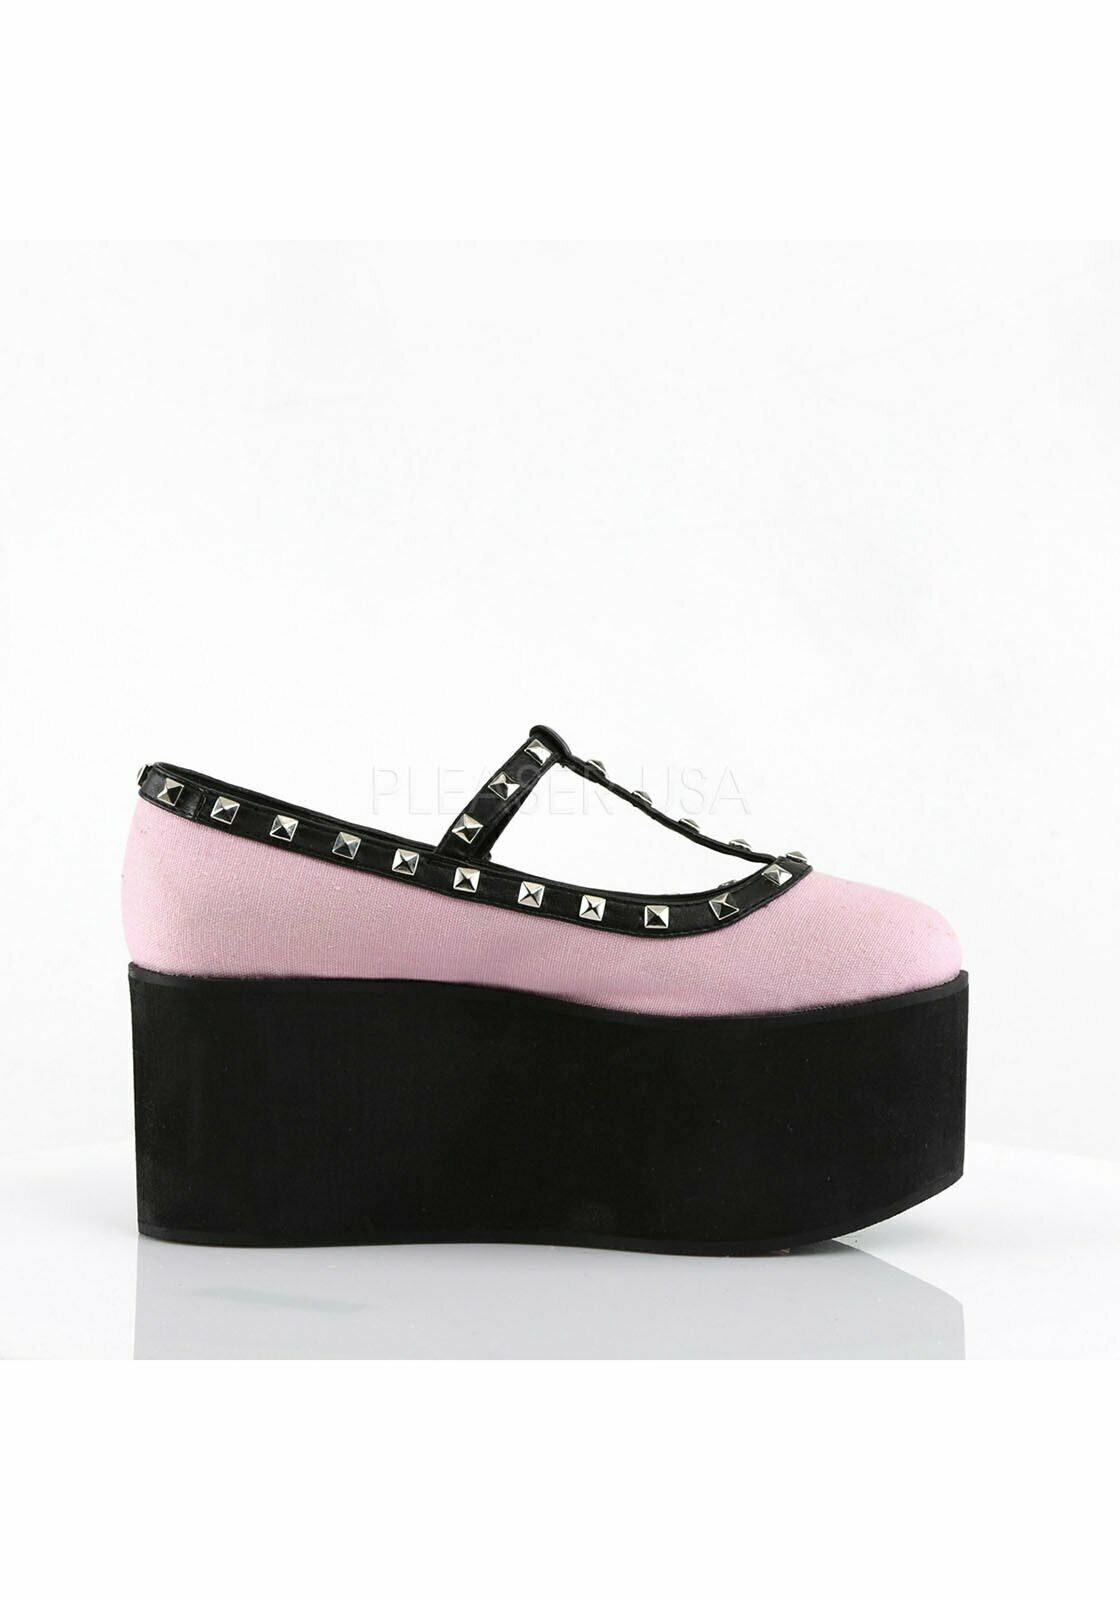 Demonia CLICK-07 3 1 4'' Platform Two Tone T-Strap With Studs And Buckle Detail